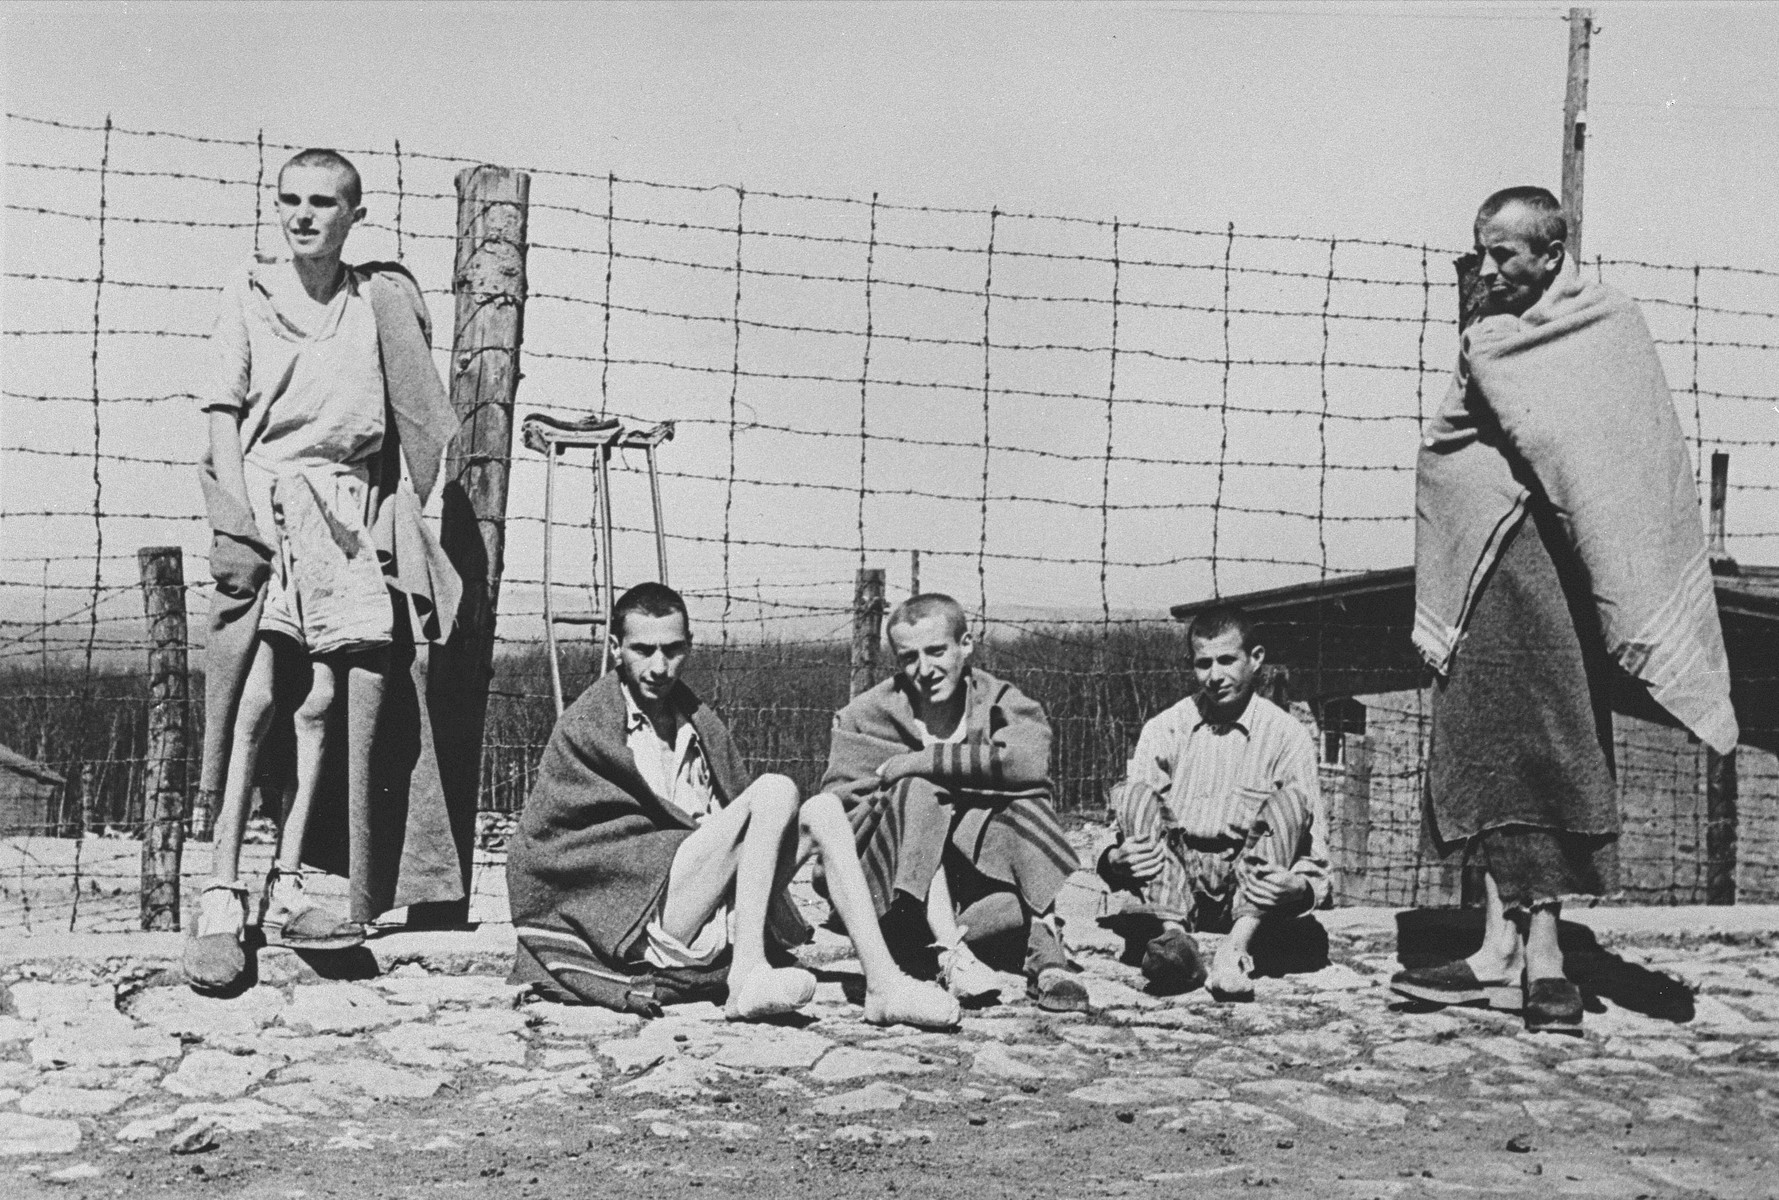 A group of young survivors in Buchenwald.